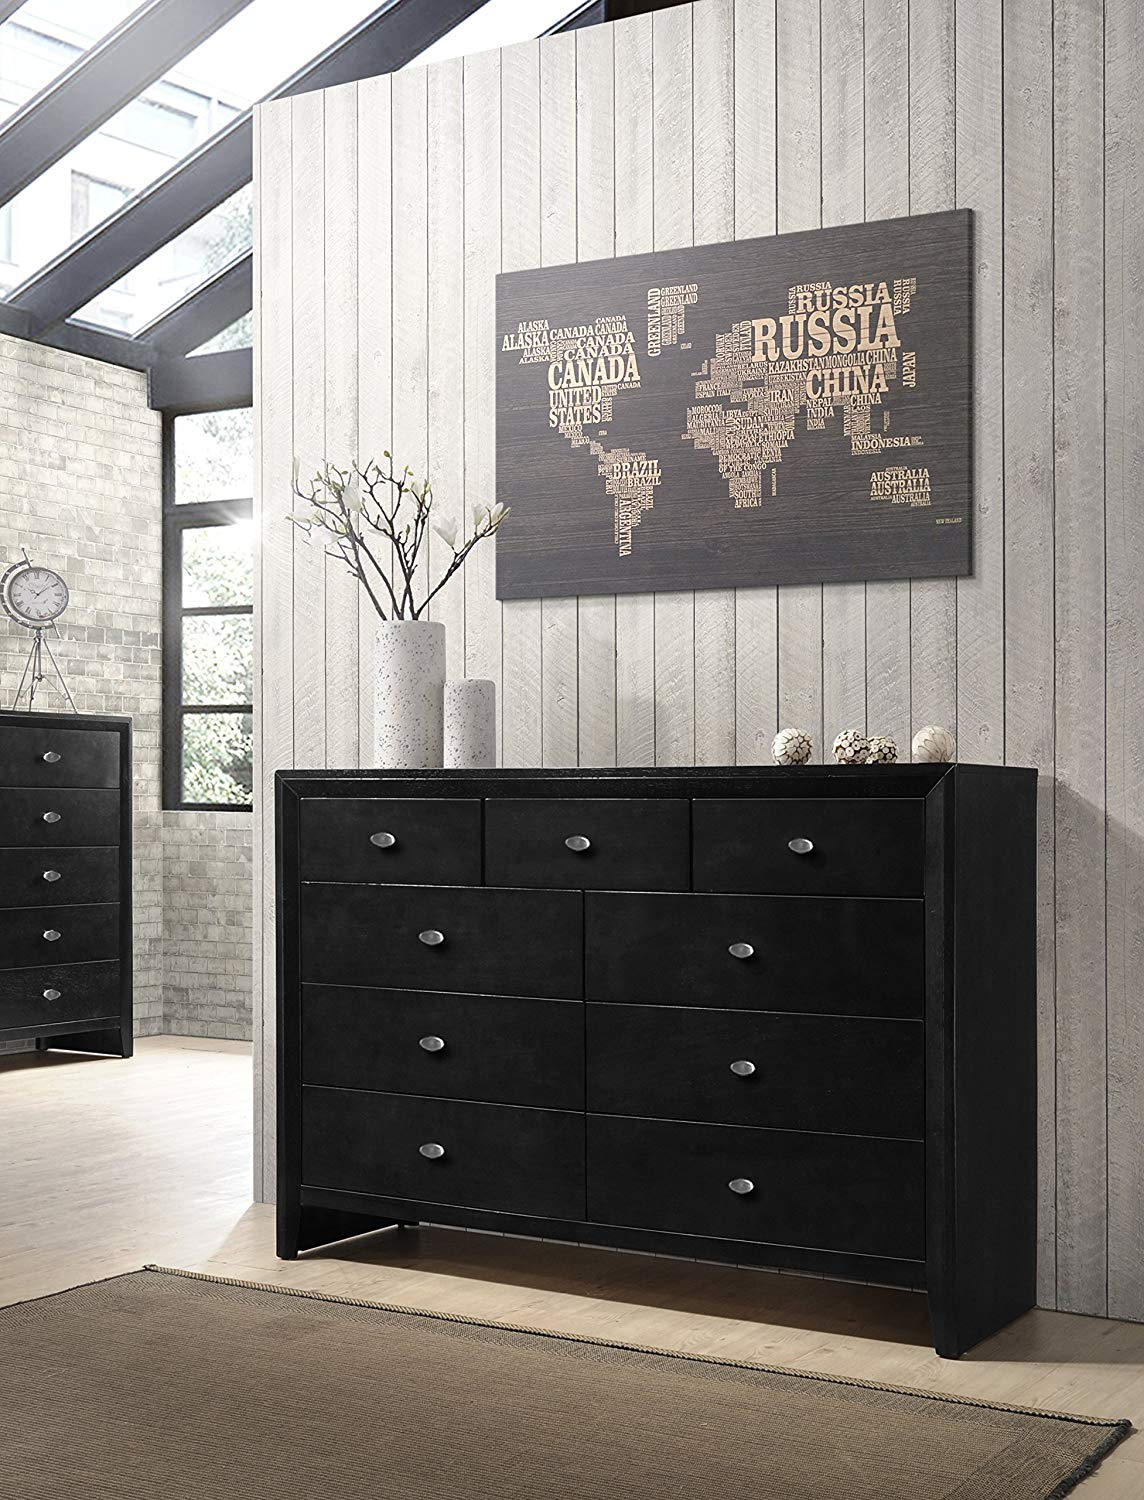 9 Drawers with Dresser Gloria Black Finish Wood dresser